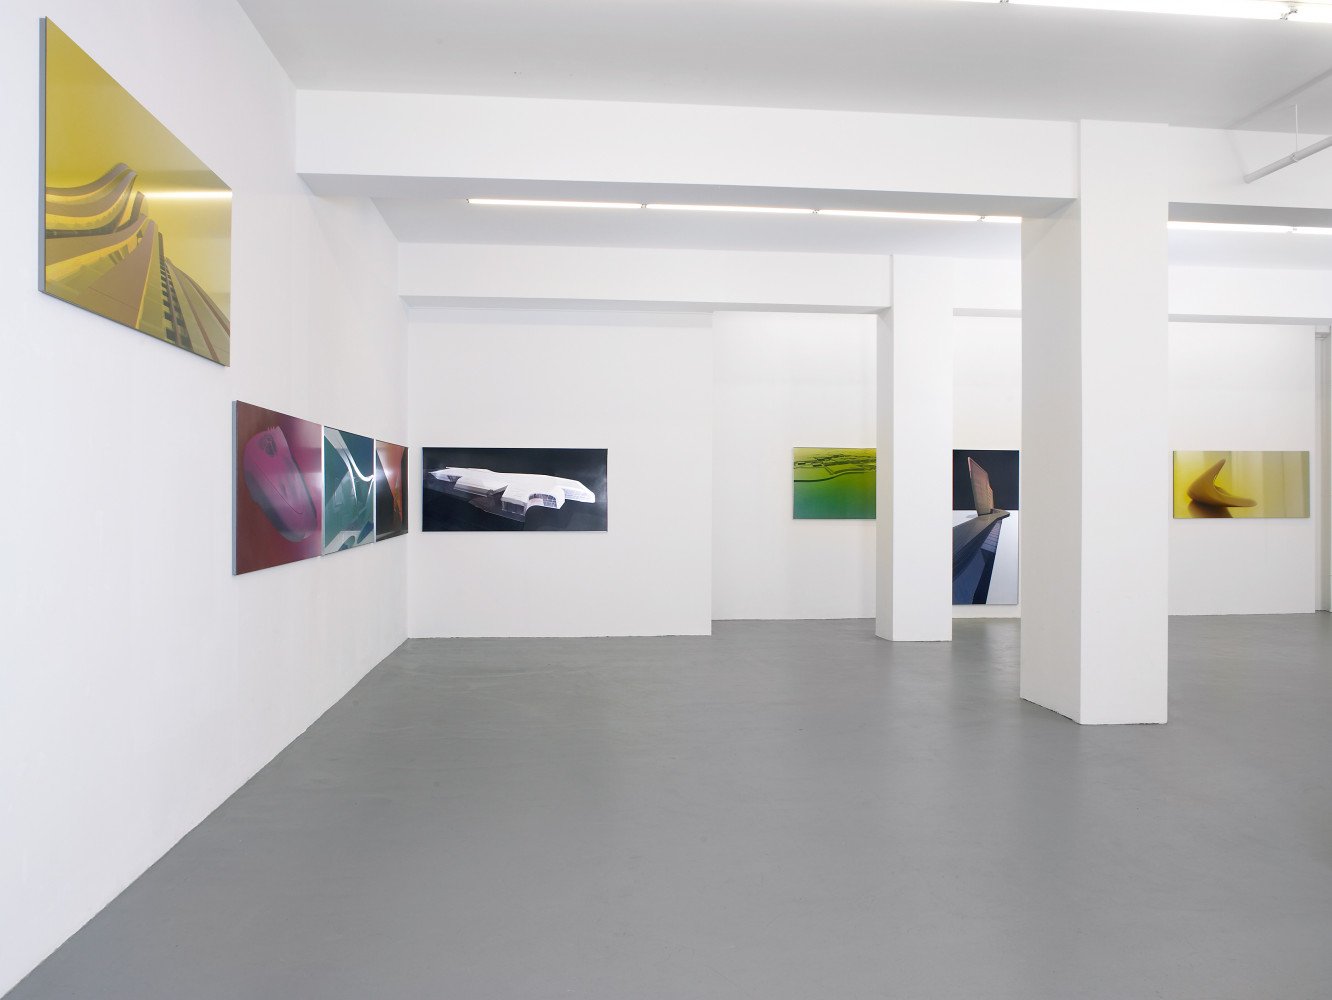 Zaha Hadid, 'Silver Paintings', Installation view, Buchmann Galerie, 2007